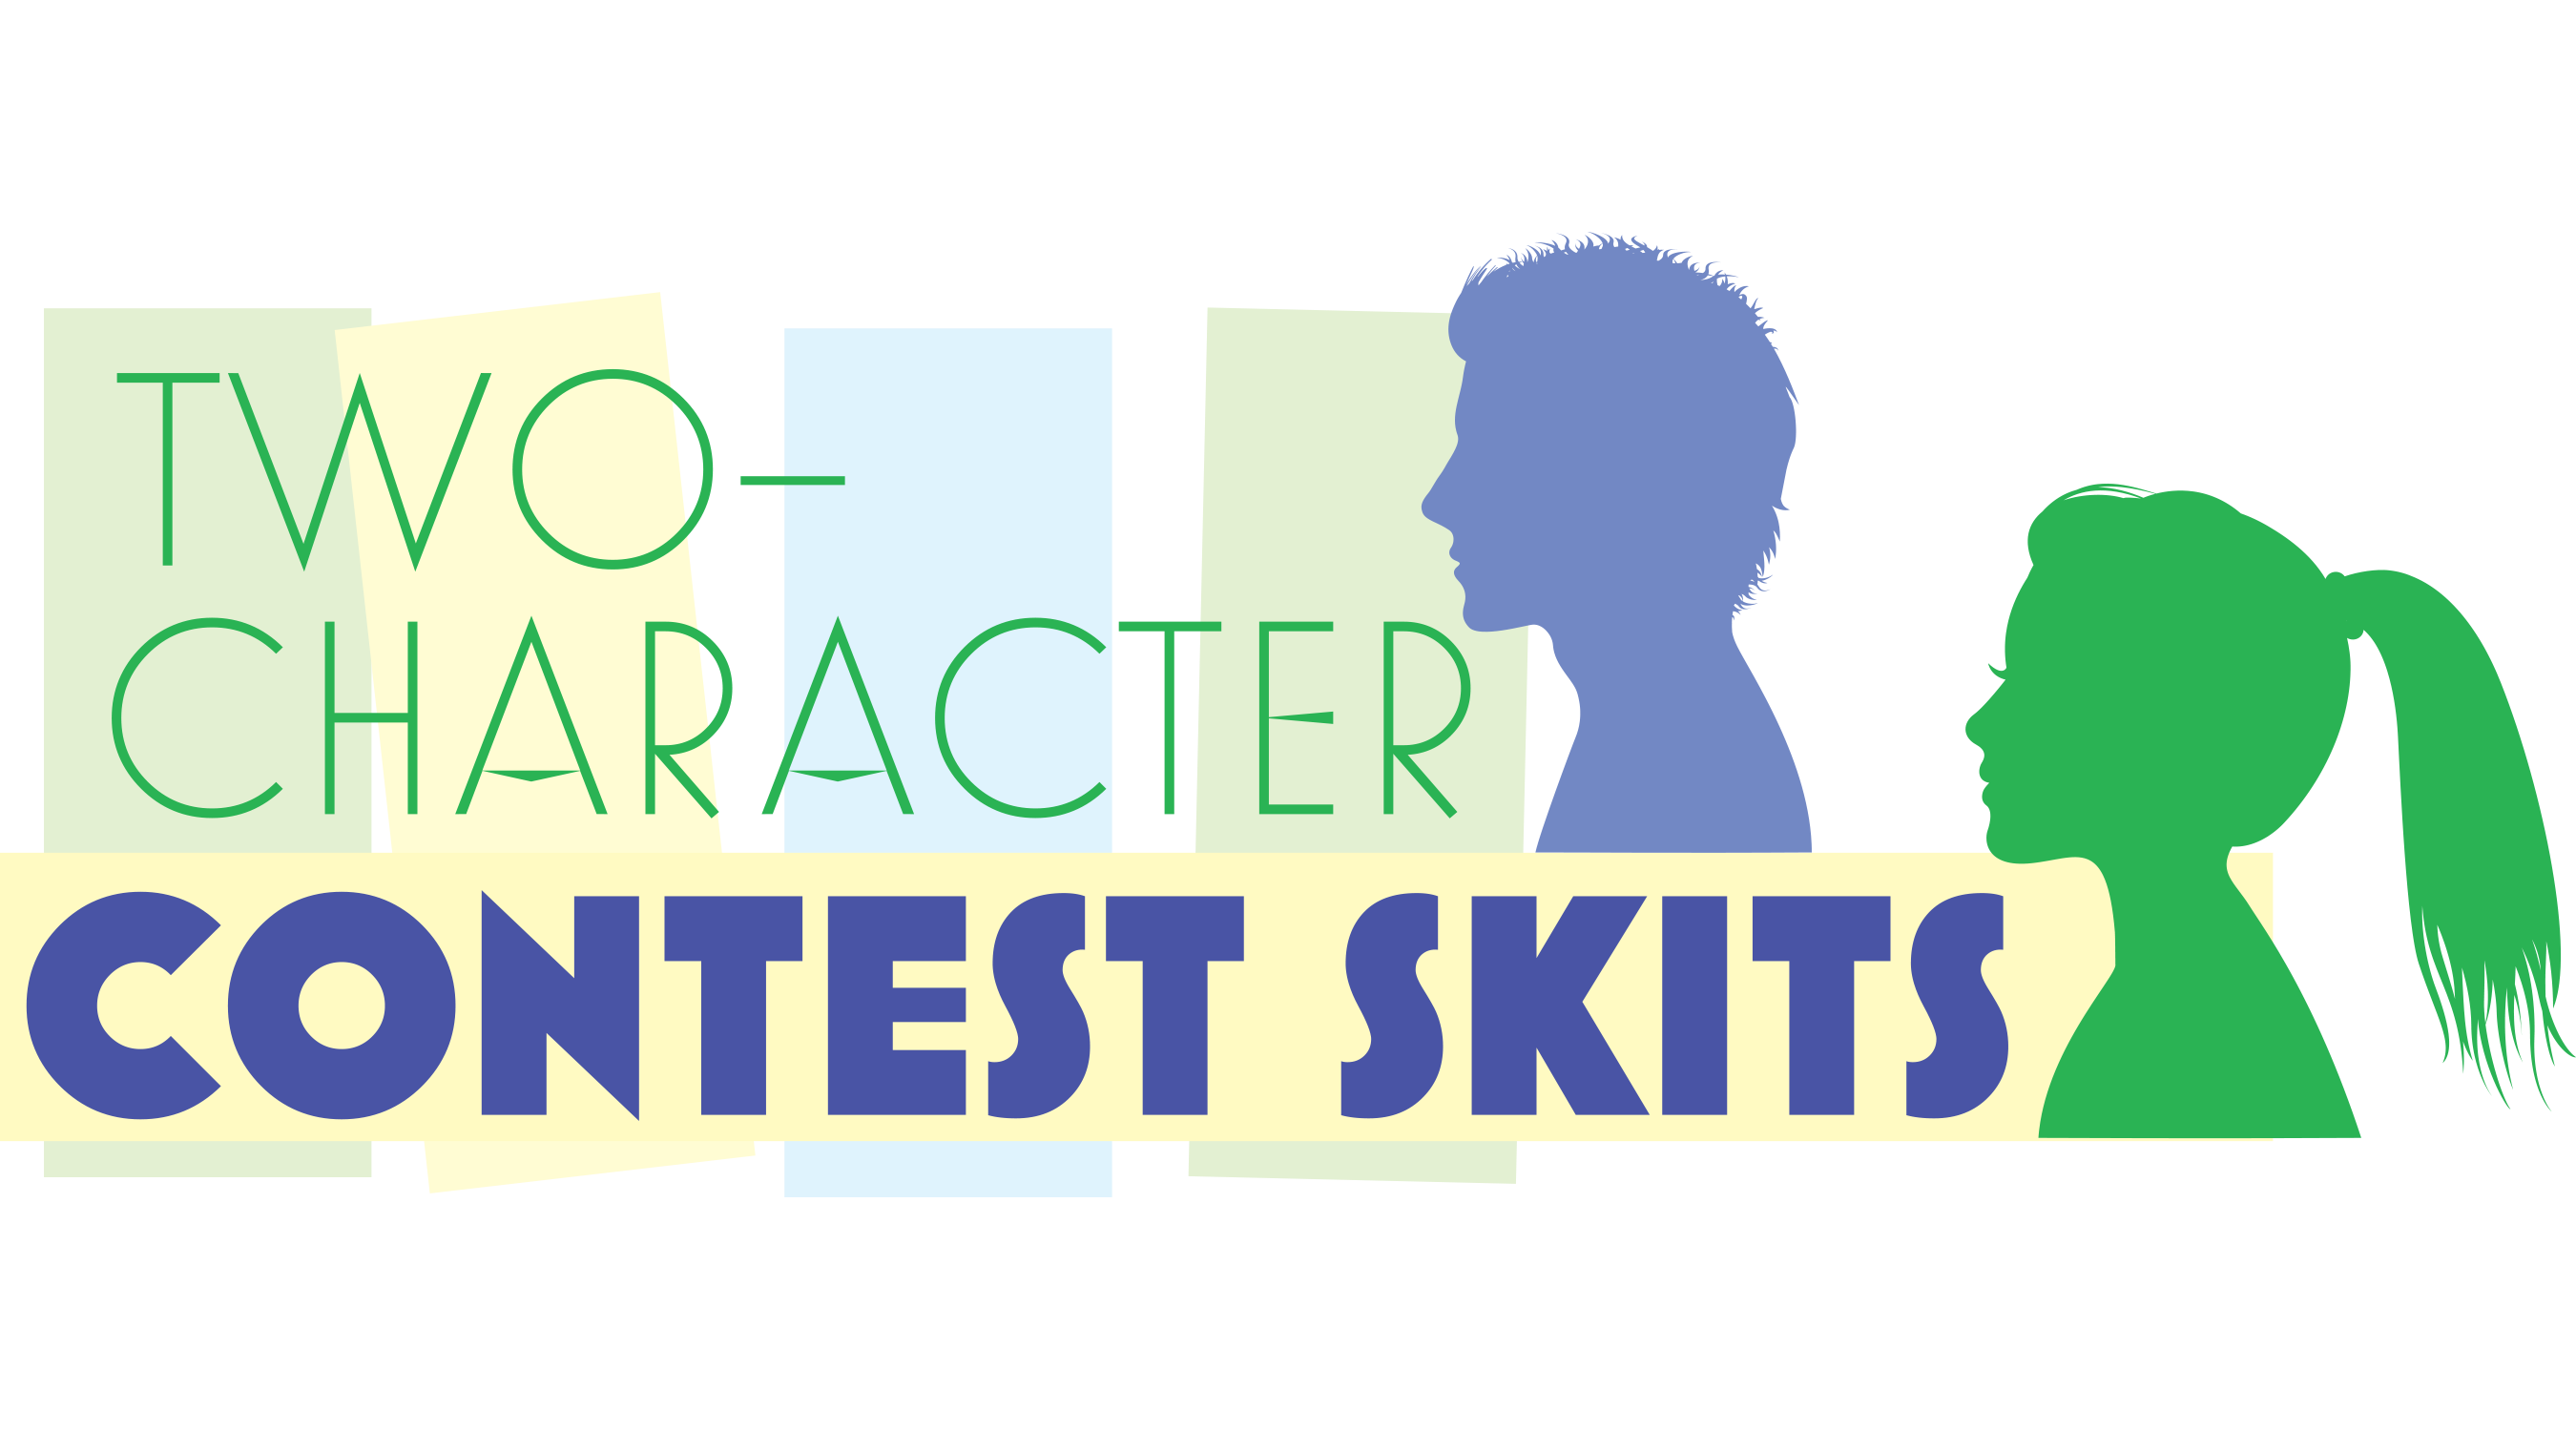 Two-Character Contest Skits